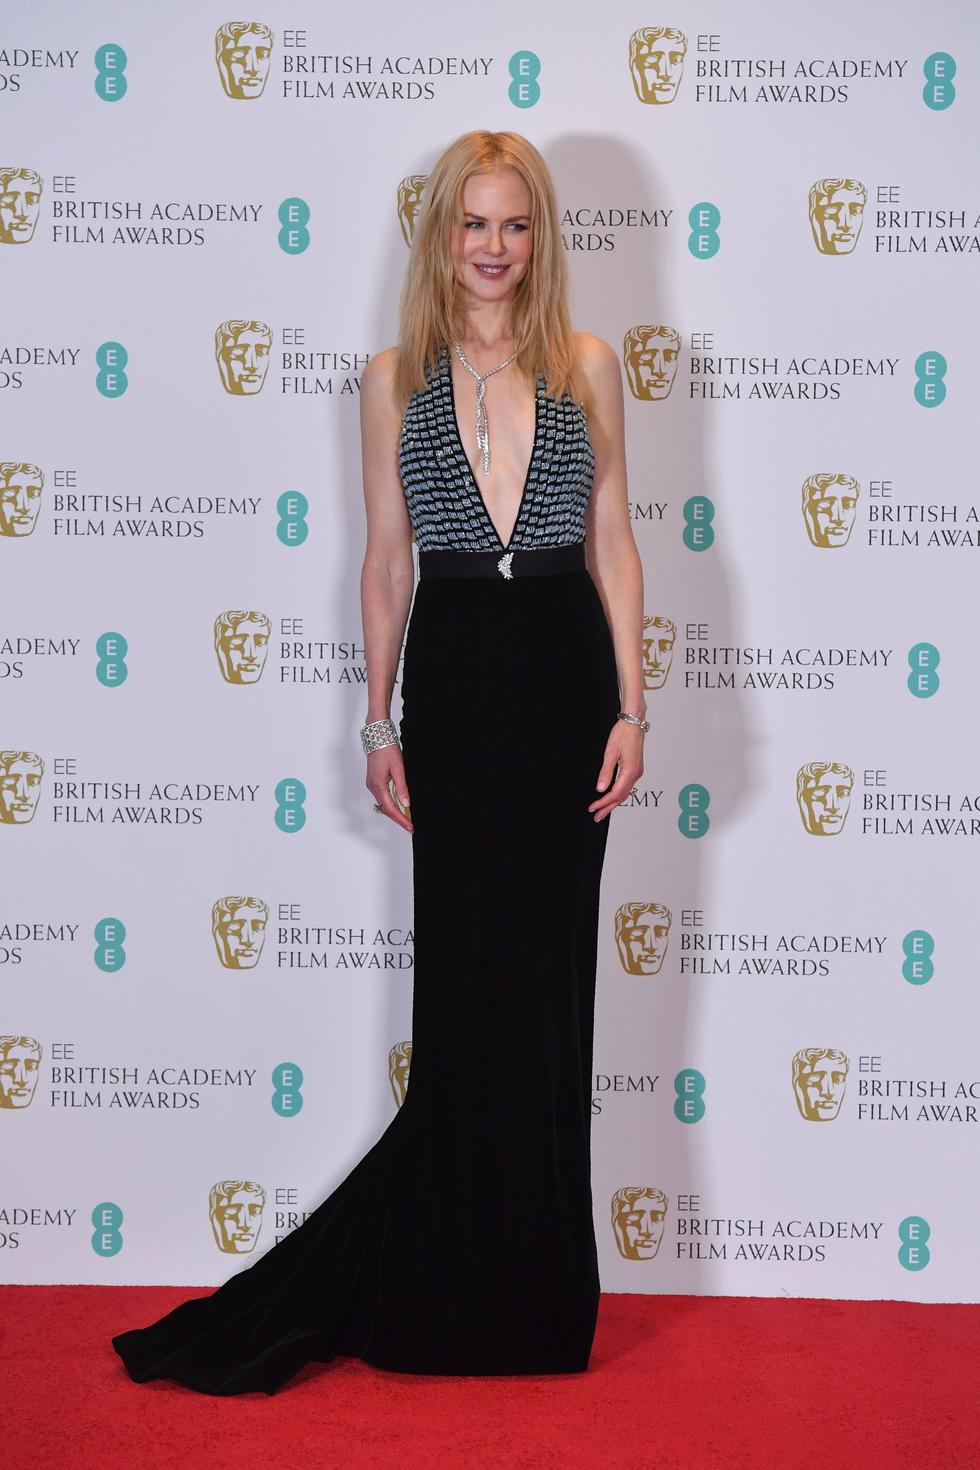 Australian actress at the BAFTA British Academy Film Awards in an Armani gown